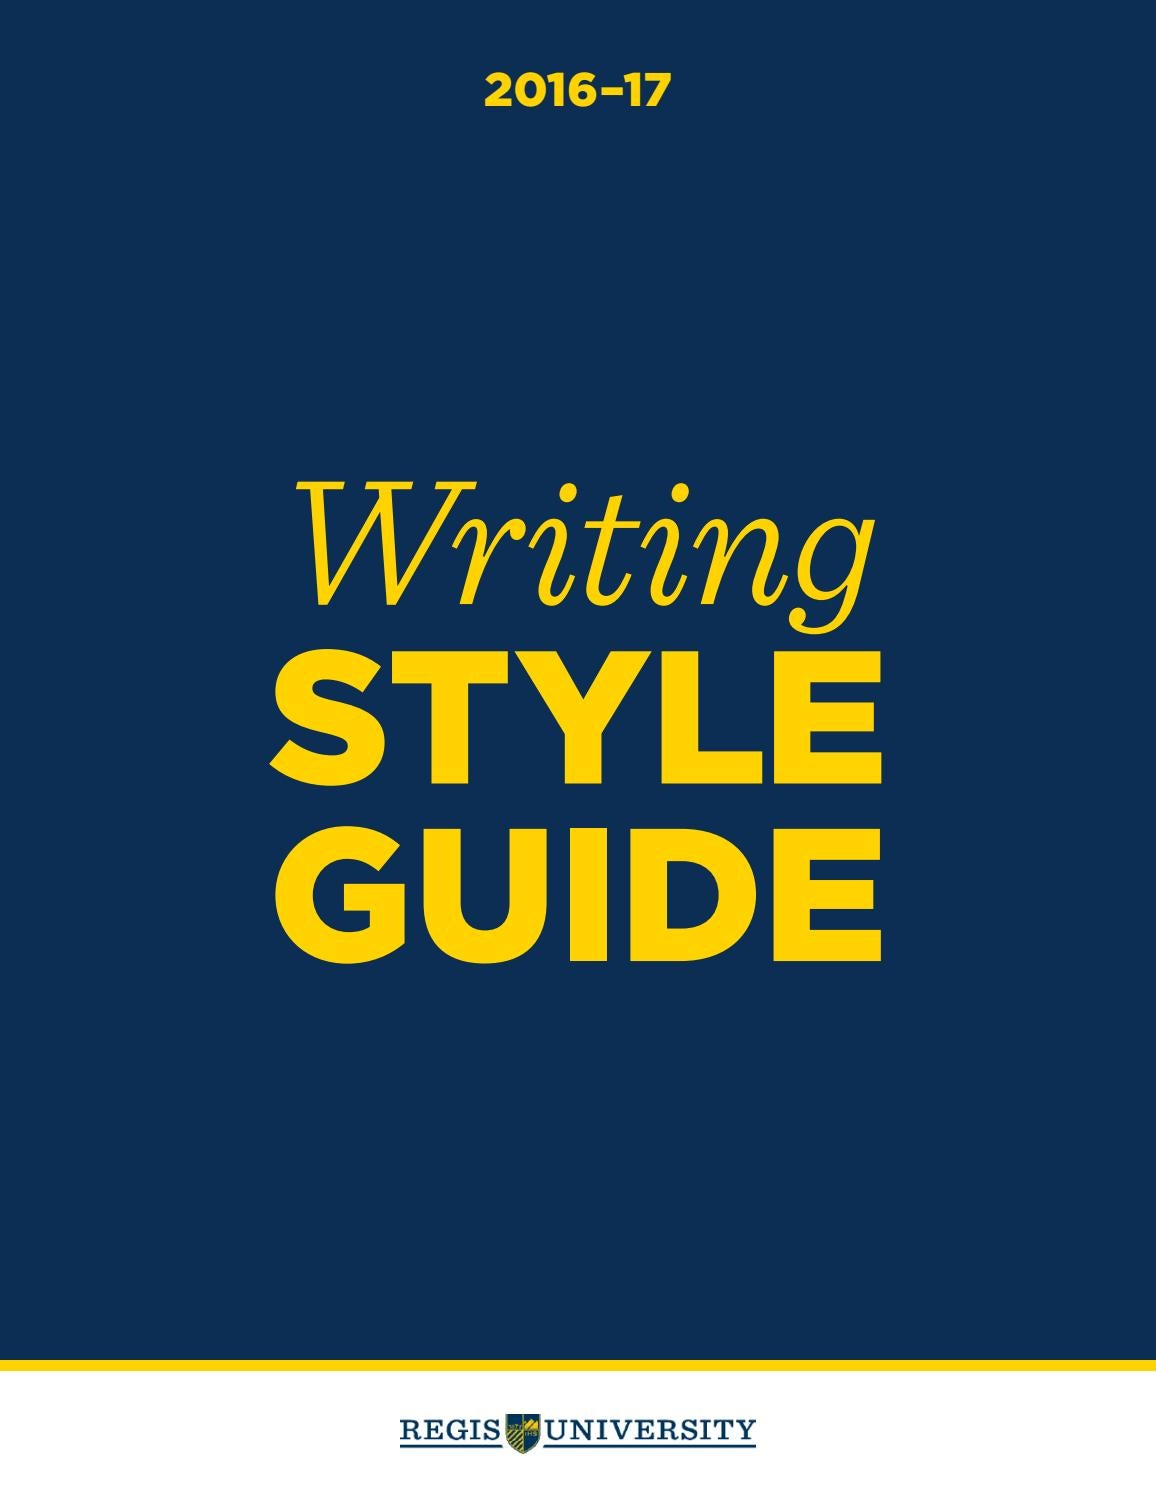 style guide journlaism The style guide includes part 1, air university style guide for writers and editors, which has served as au's style manual since 2001, and part 2, air university press author guide, which provides instructions for potential au.